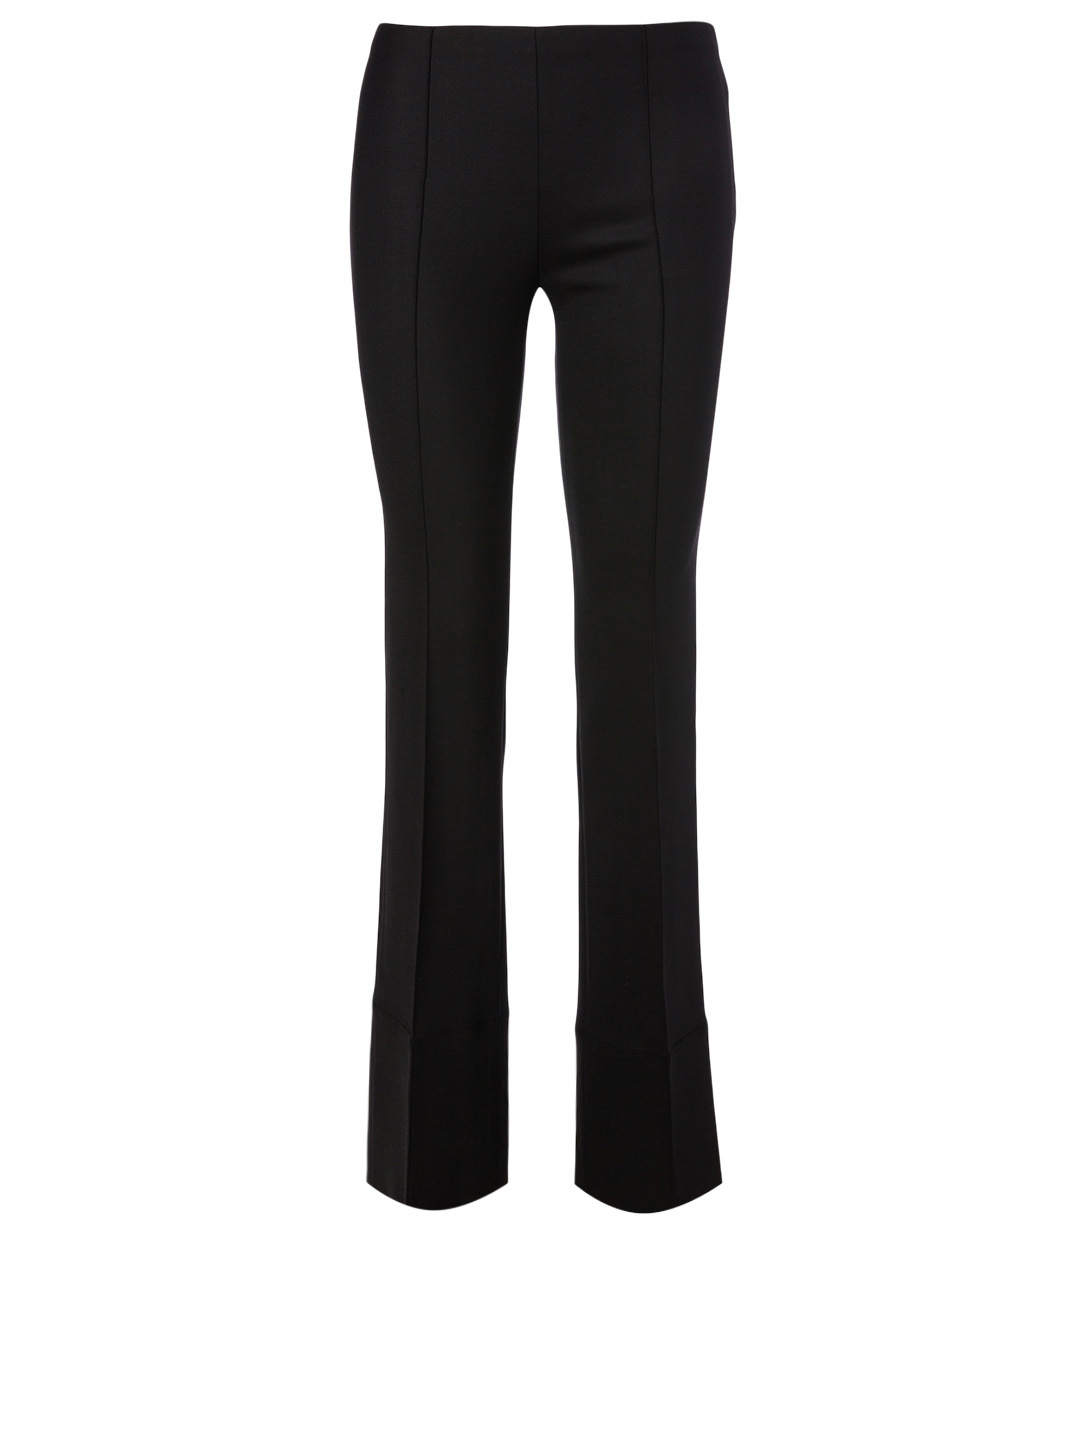 THE ROW Kriss Wool Stretch Pants Women's Black